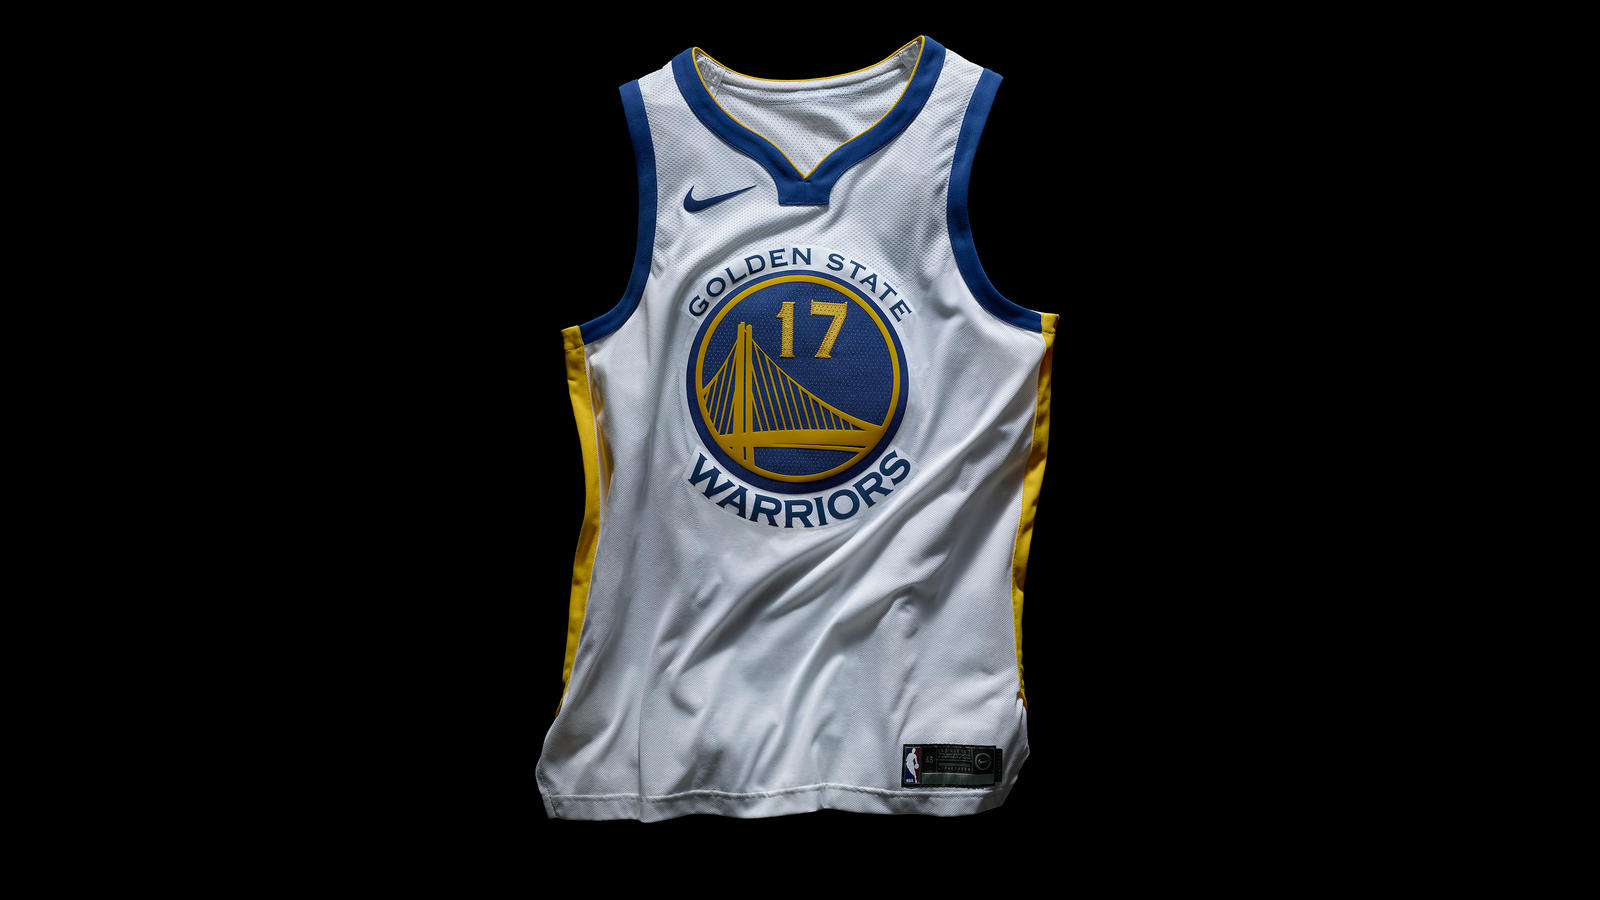 0b6960a5068 Nike and the NBA Reveal the First of the League s 2017-18 Game Uniforms 4